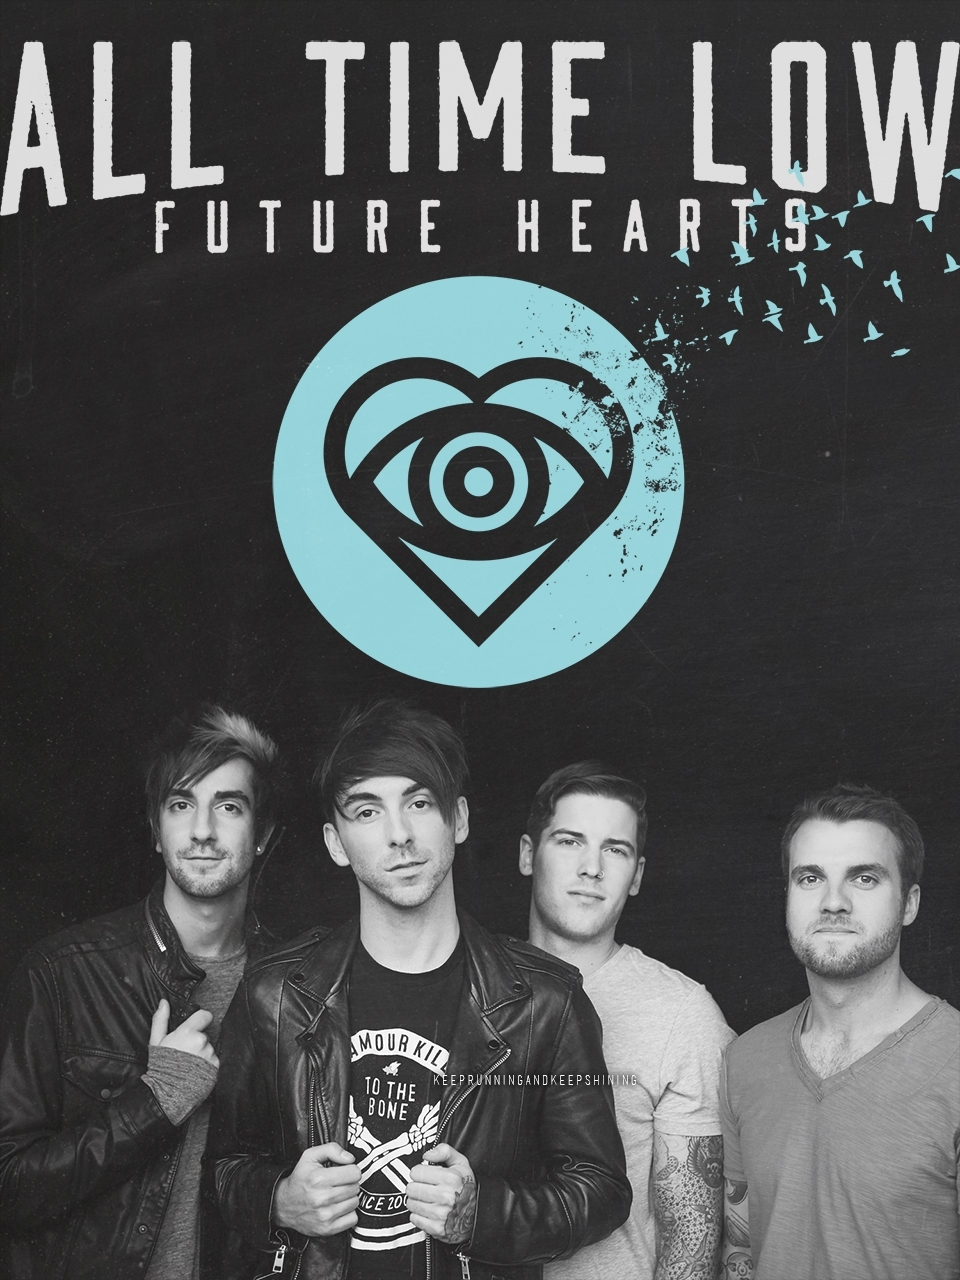 all time low - future hearts. "